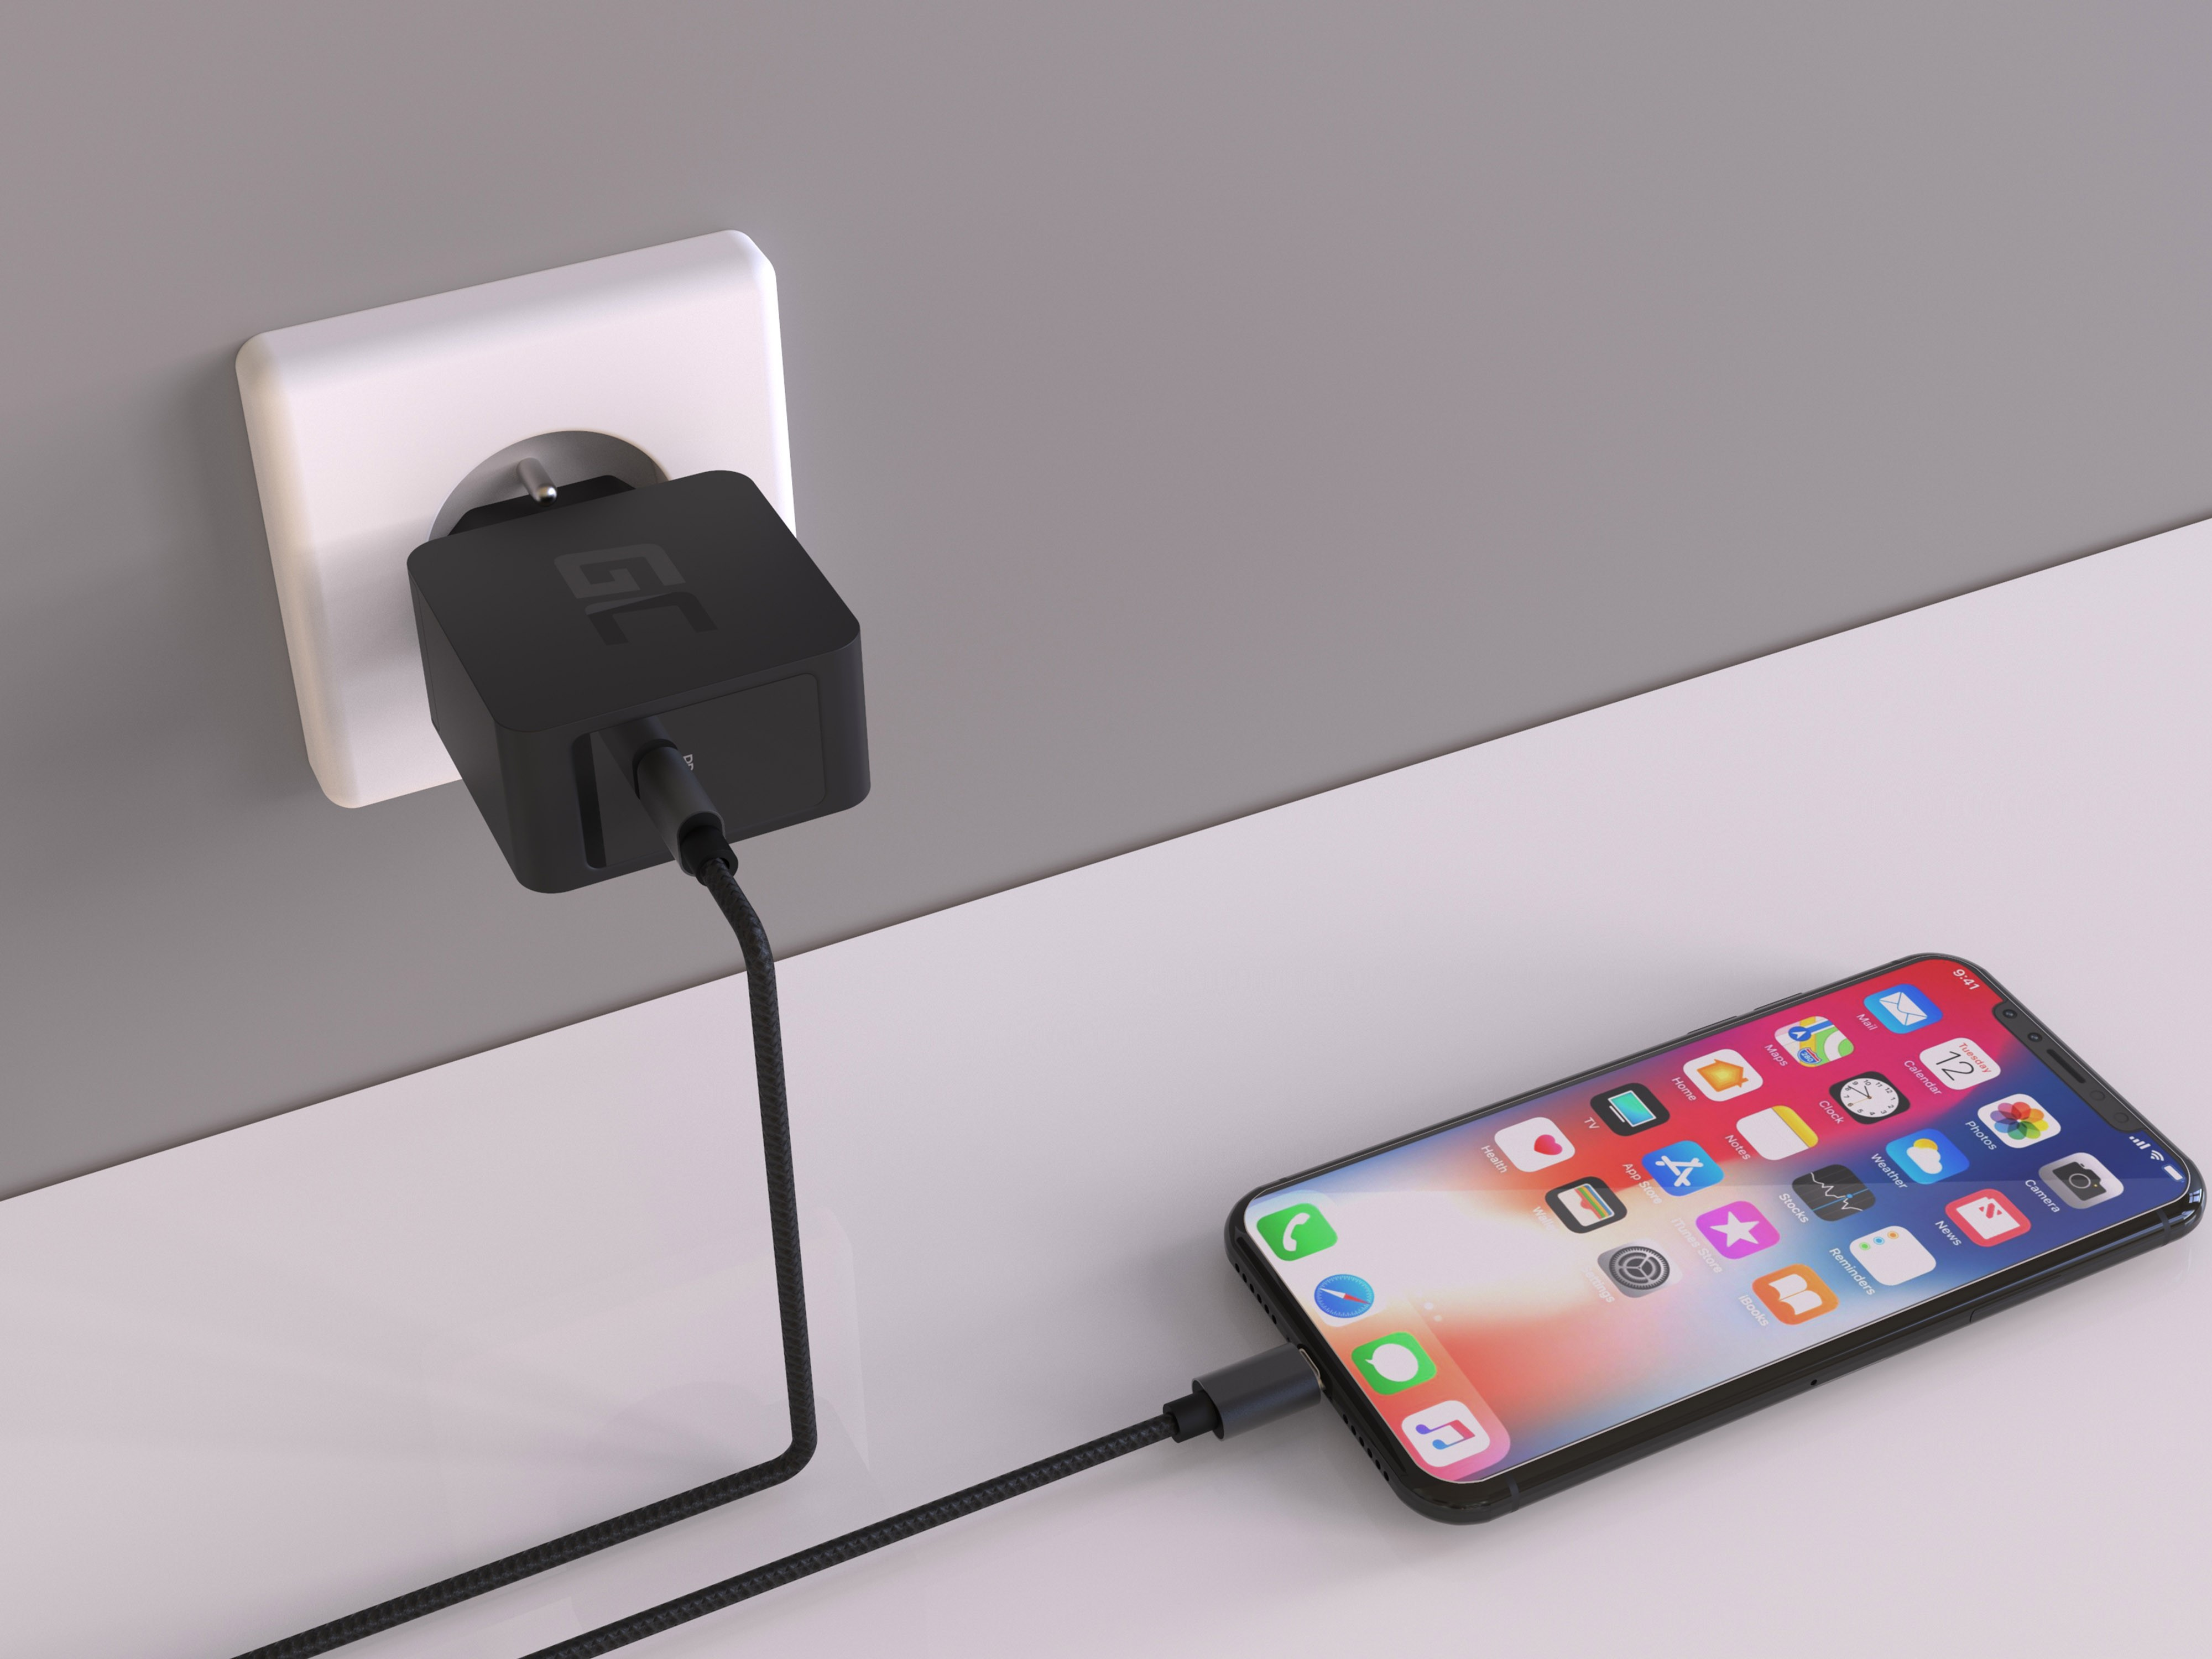 USB charger-C 18W PD for Samsung Galaxy S8 S8+ S9 S9+ Note iPhone 8, X / 8  / 8 Plus, Nintendo Switch and others